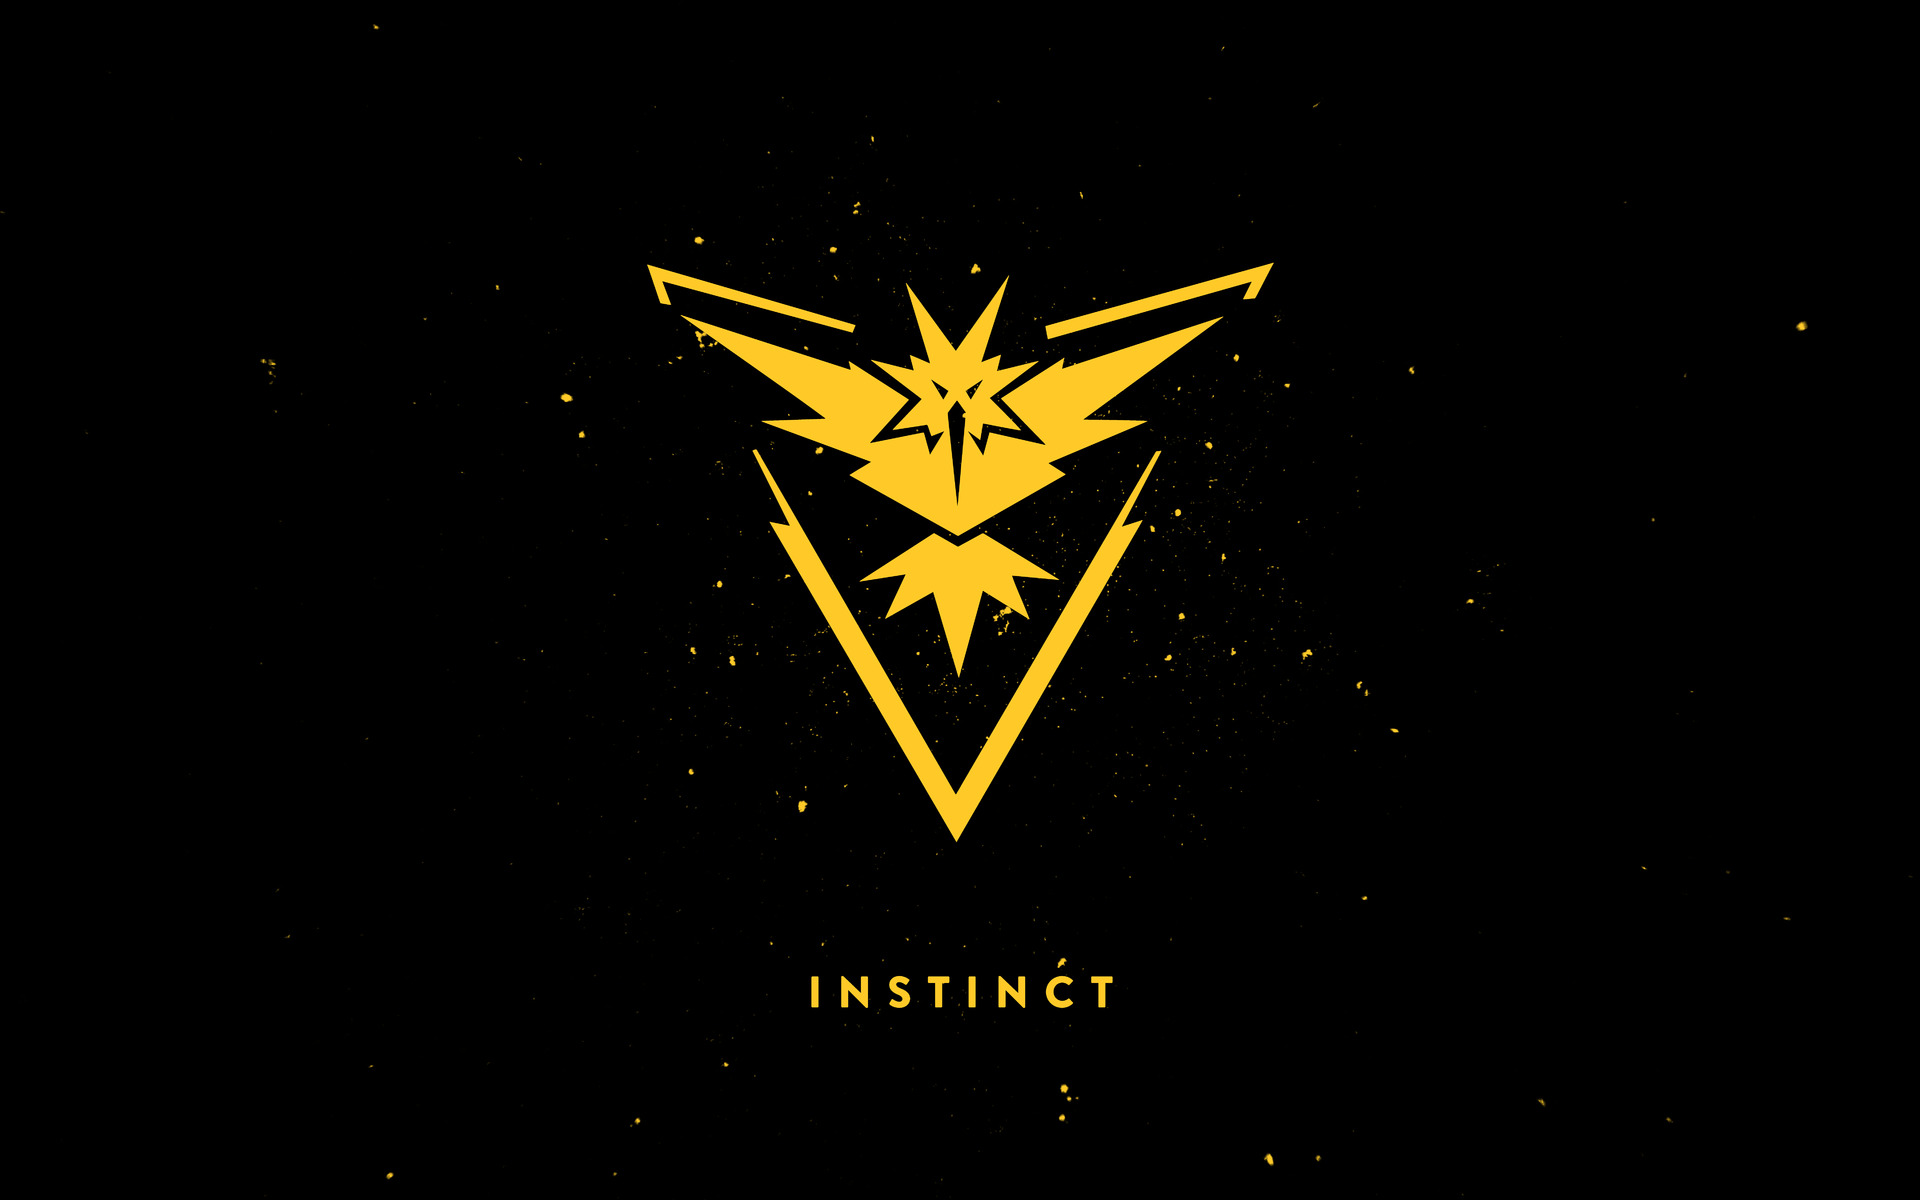 team-instinct-dark-background-lu.jpg